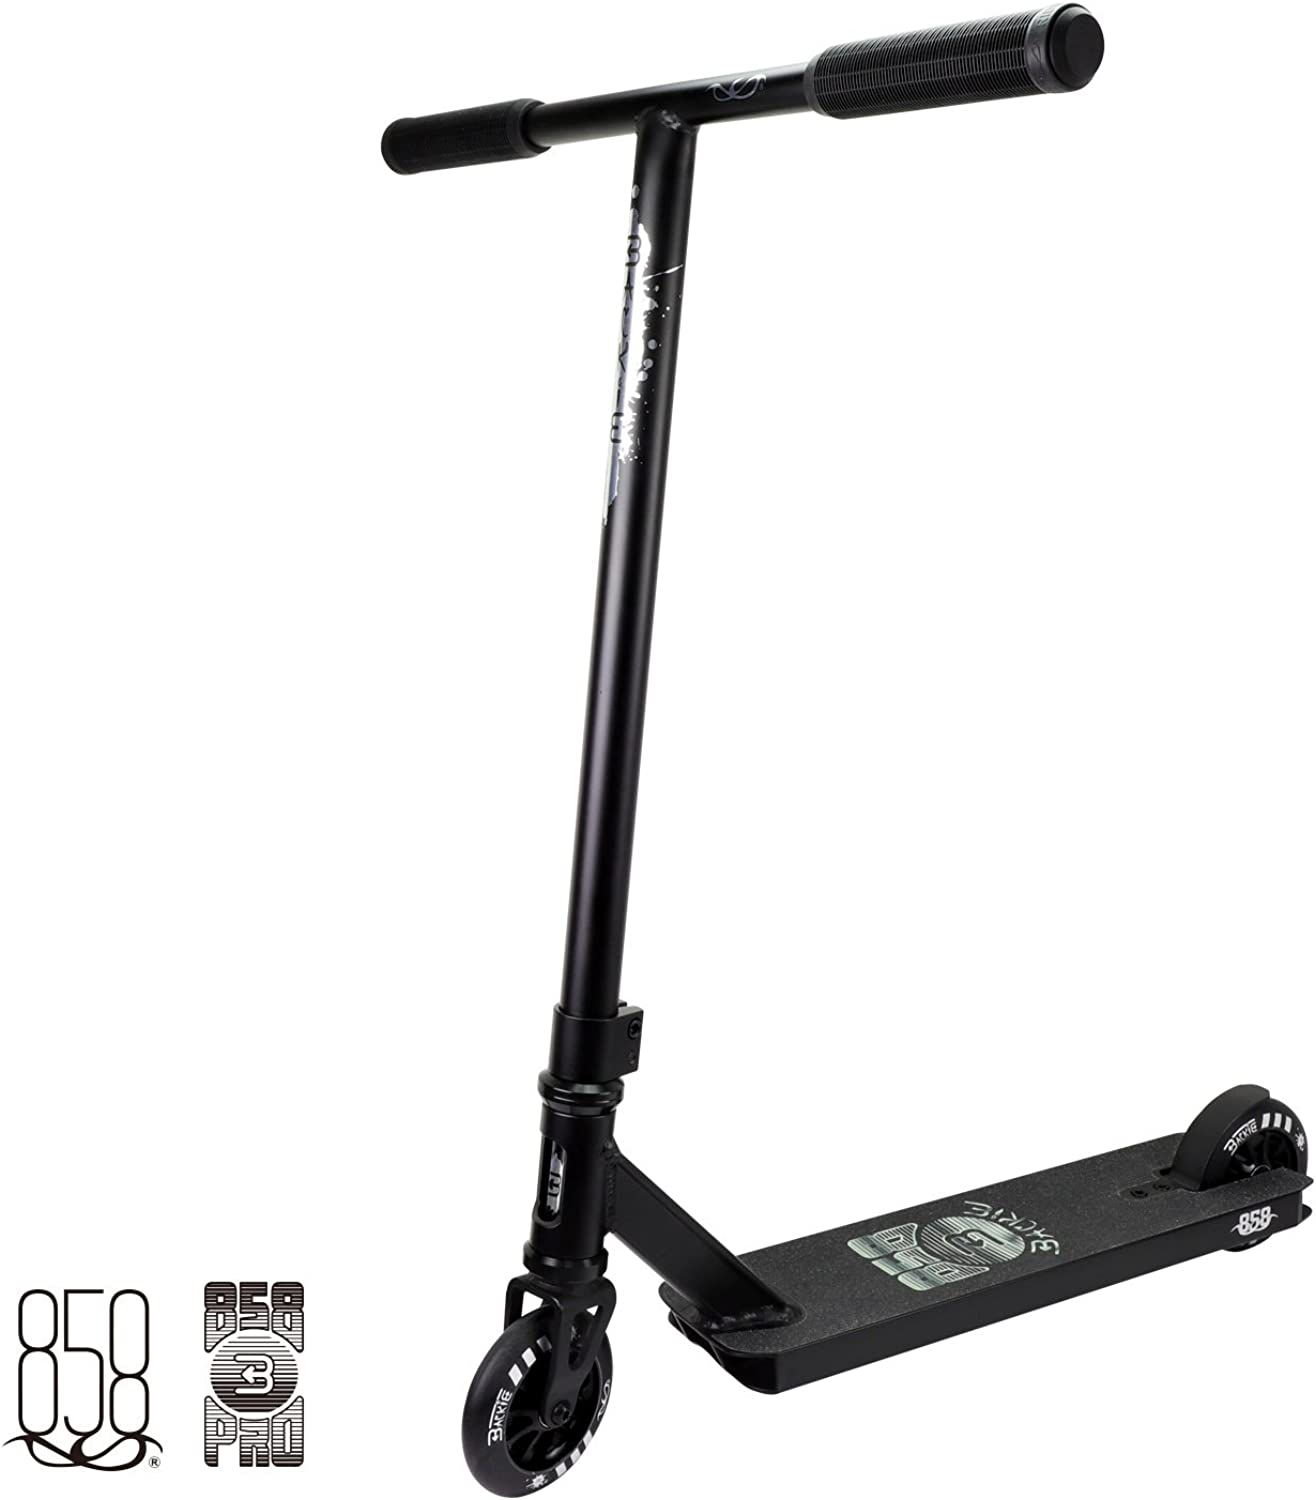 Backie Pro by Ride 858 (Black)